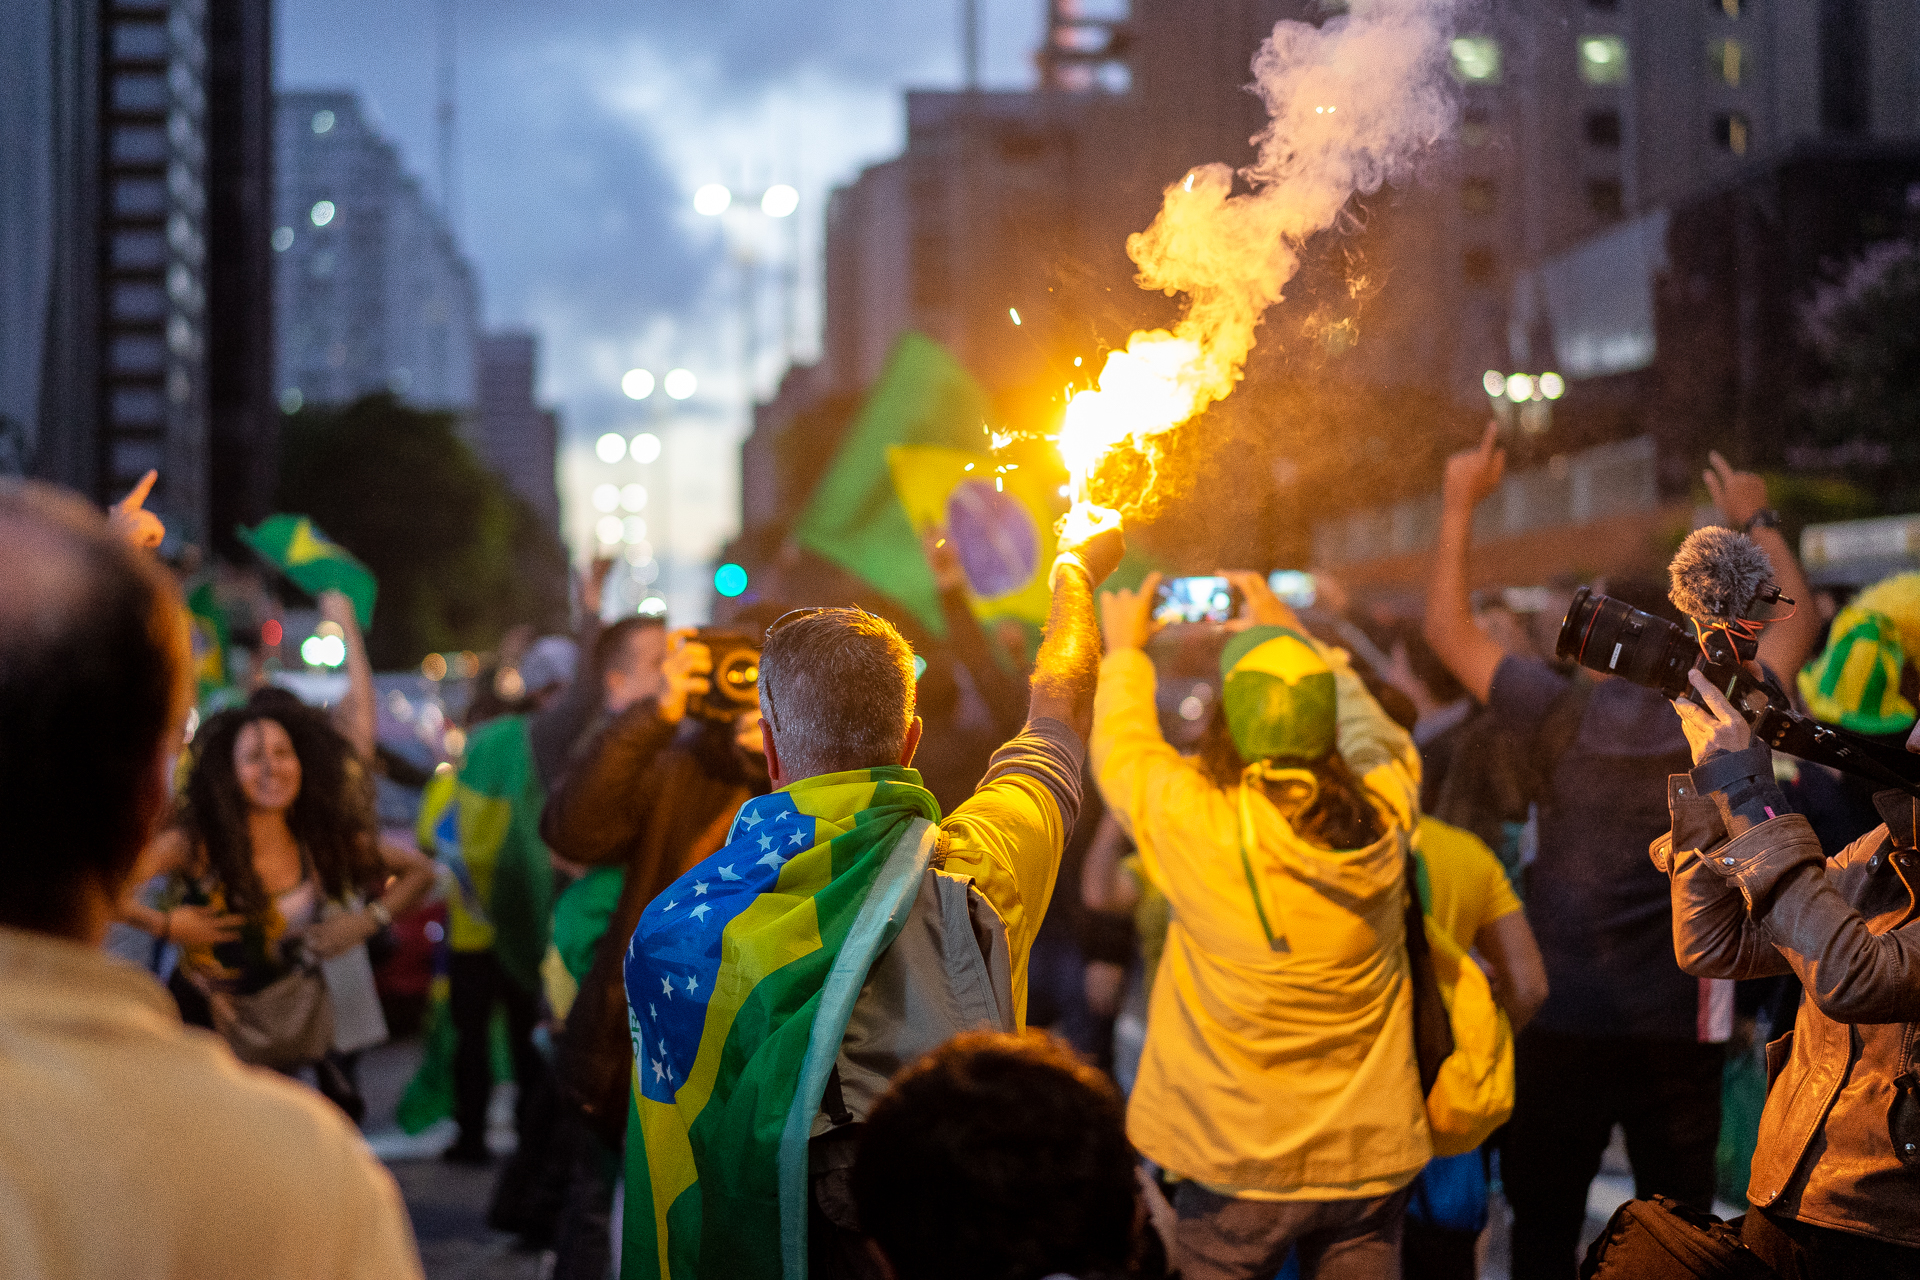 Supporters of Jair Bolsonaro celebrate following his election last year (Photo C.H. Gardiner)